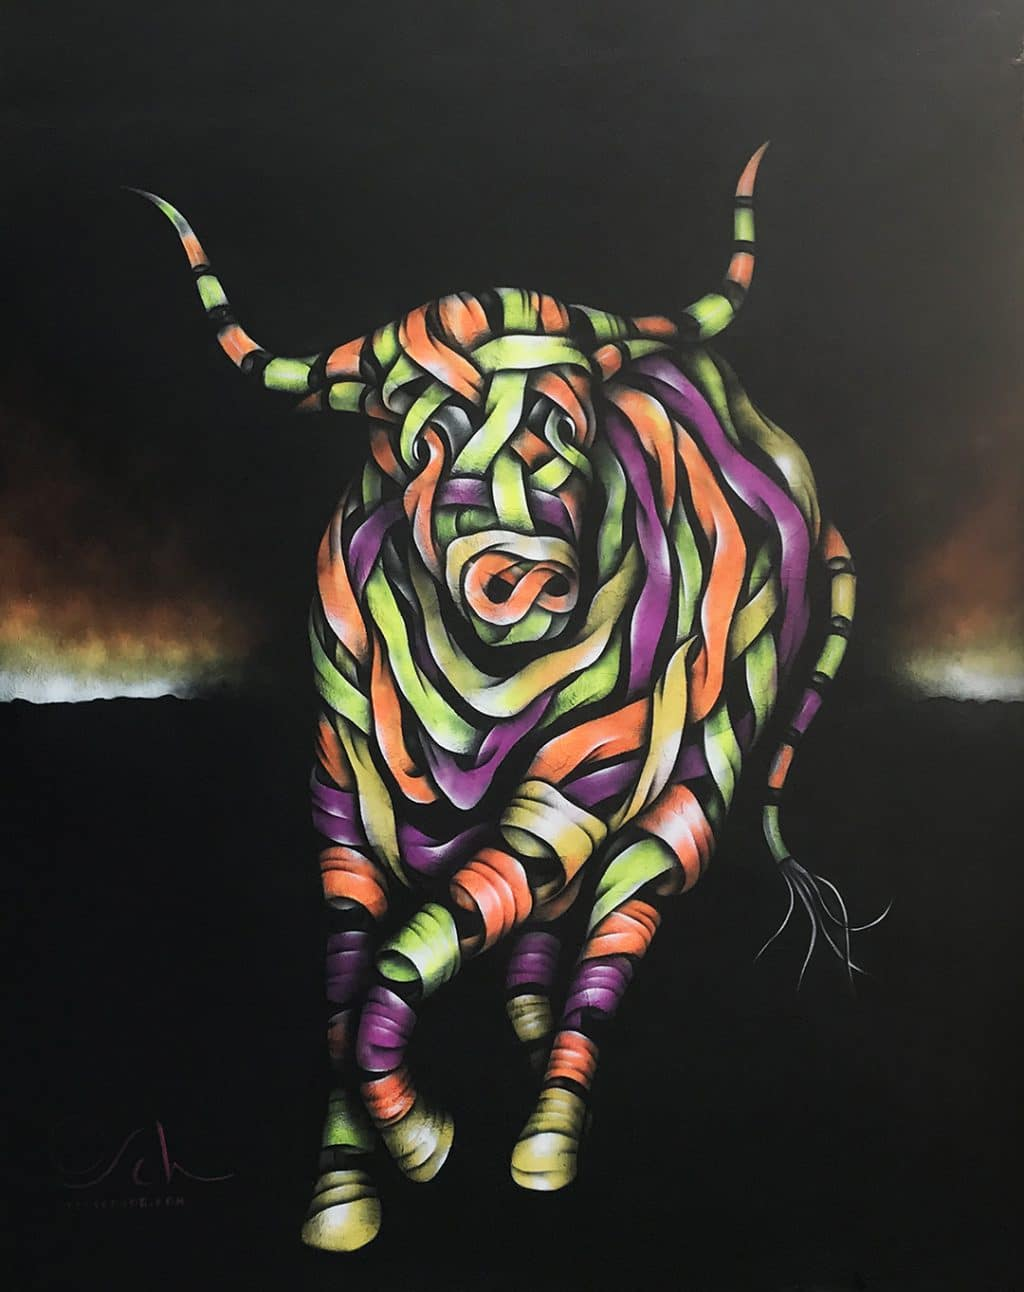 Bull in a China Shop Cocktail bar Commission